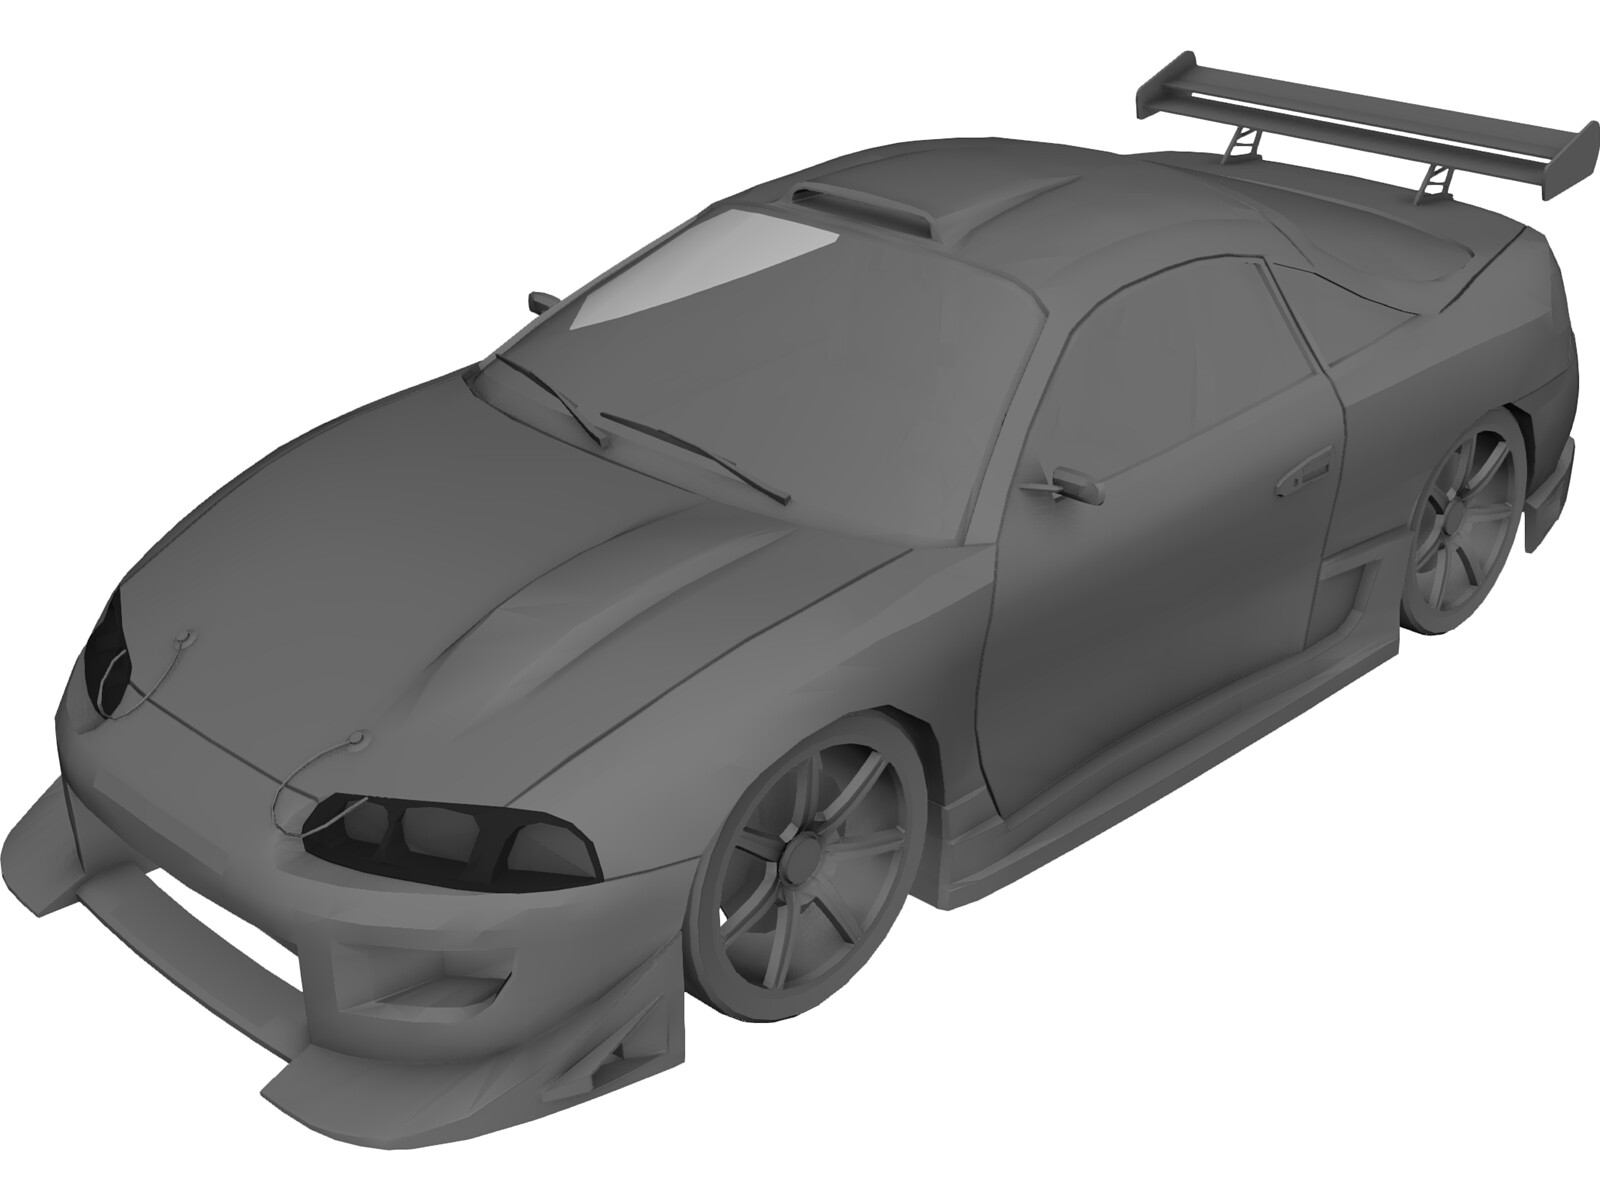 Mitsubishi Eclipse [Tuned] 3D Model